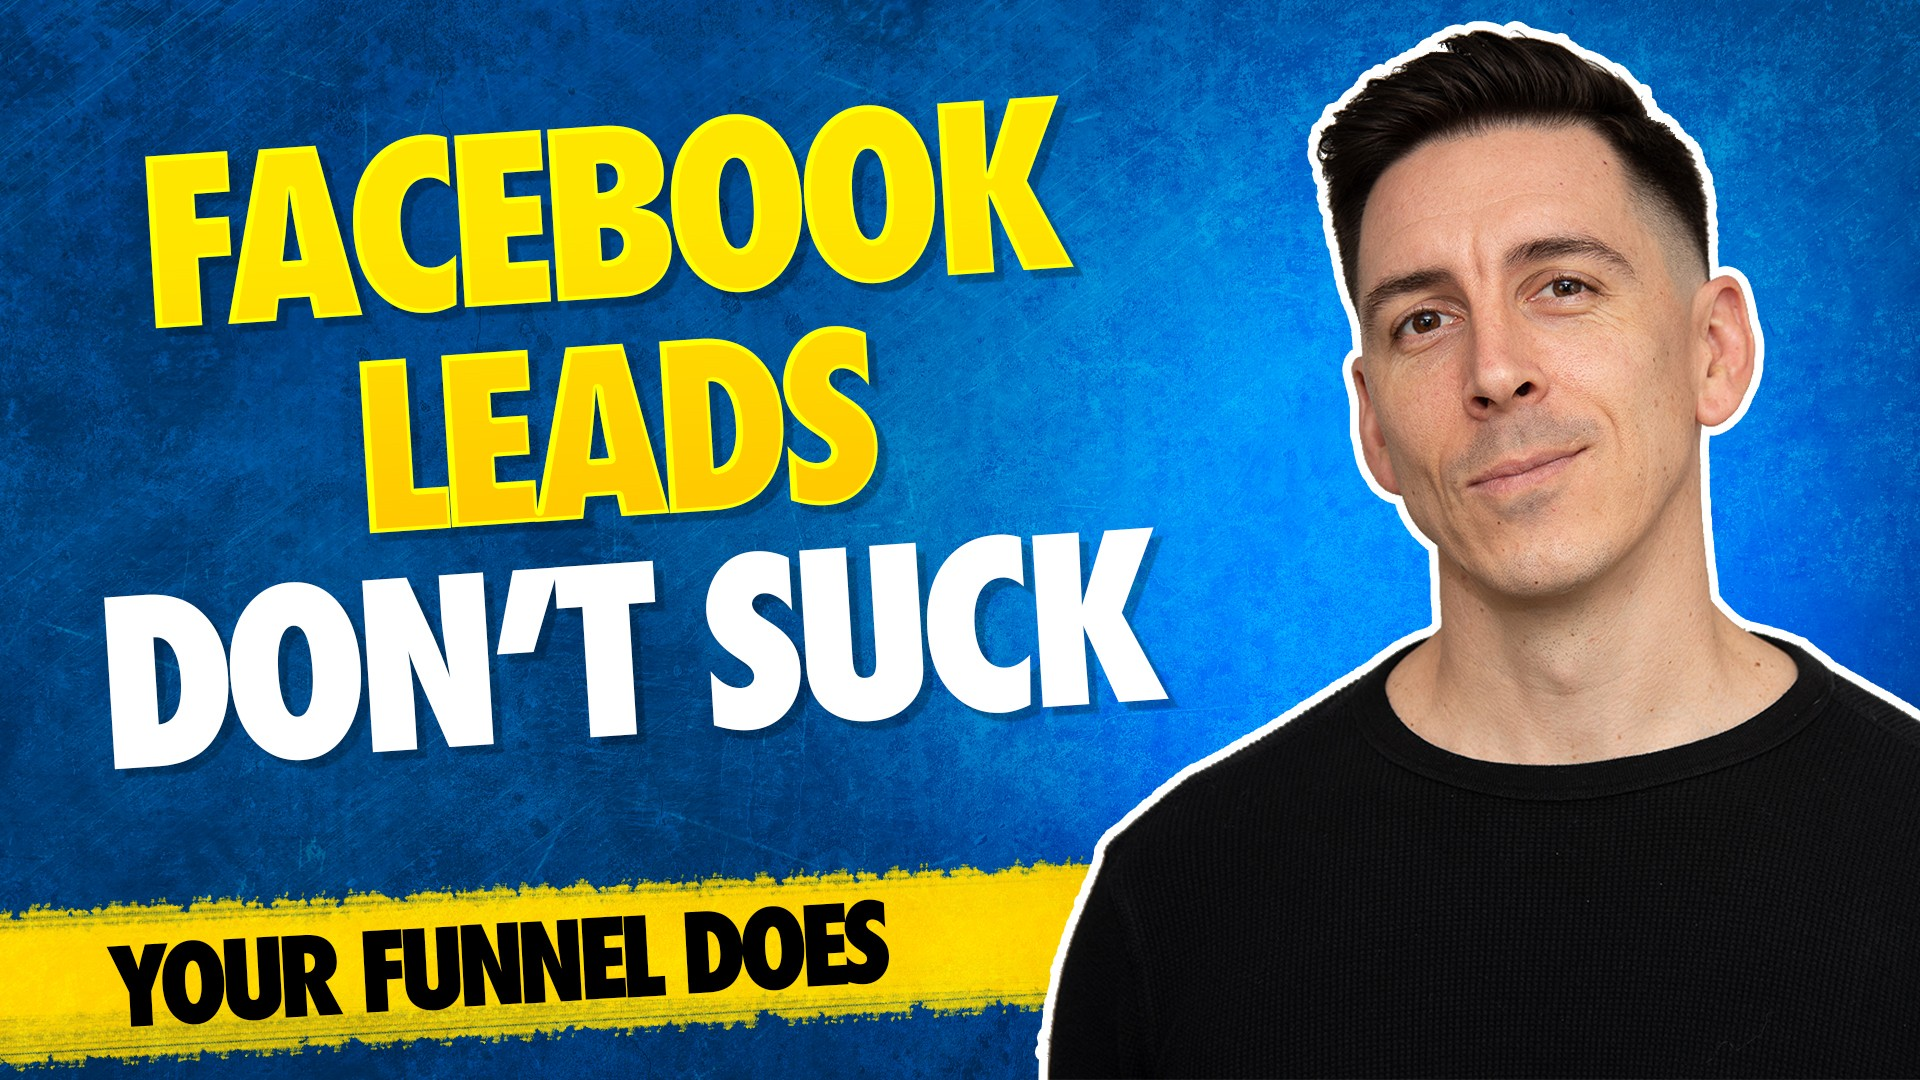 Facebook Leads Don't Suck. Your Funnel Does.